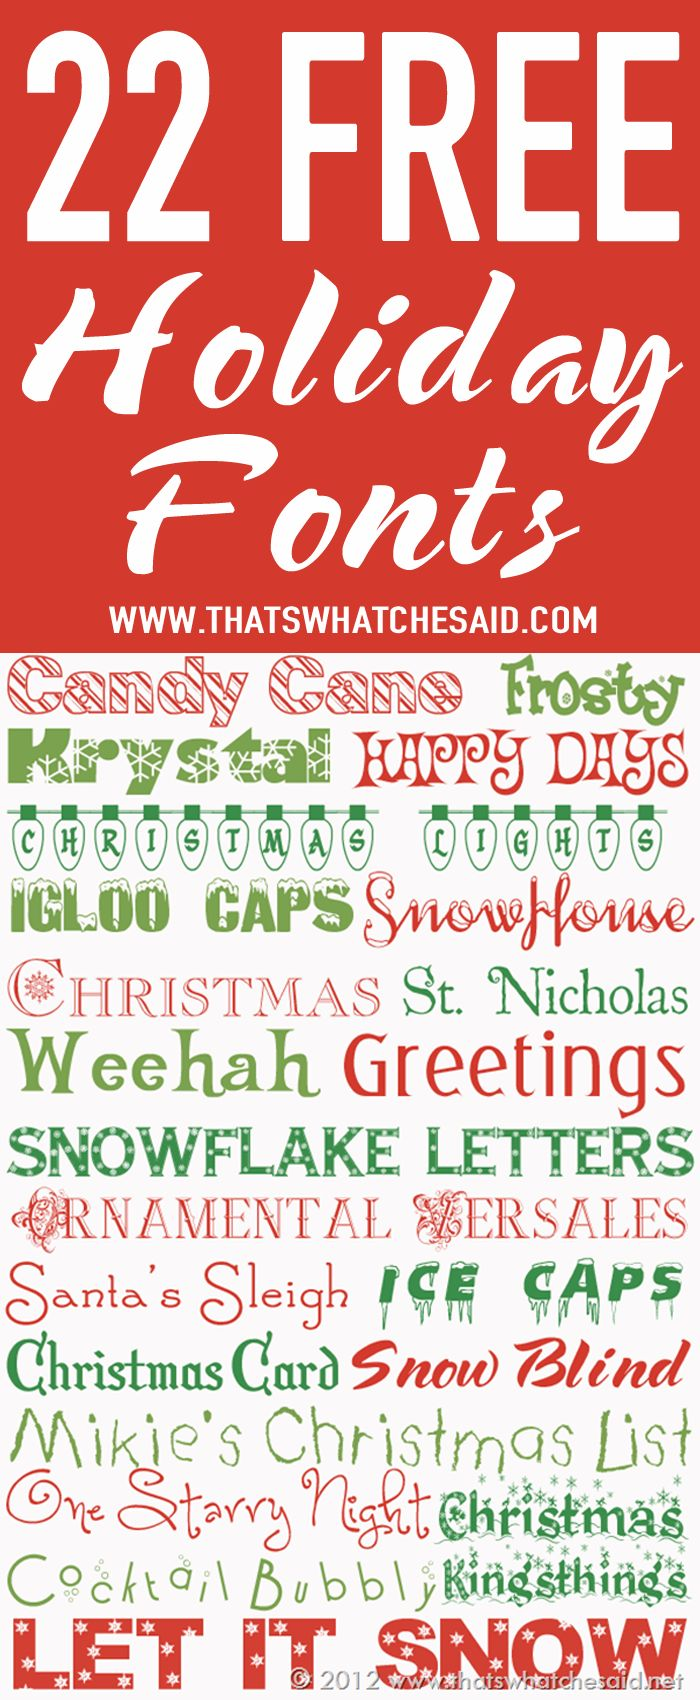 22 Free Holiday Fonts at www.thatswhatchesaid.com